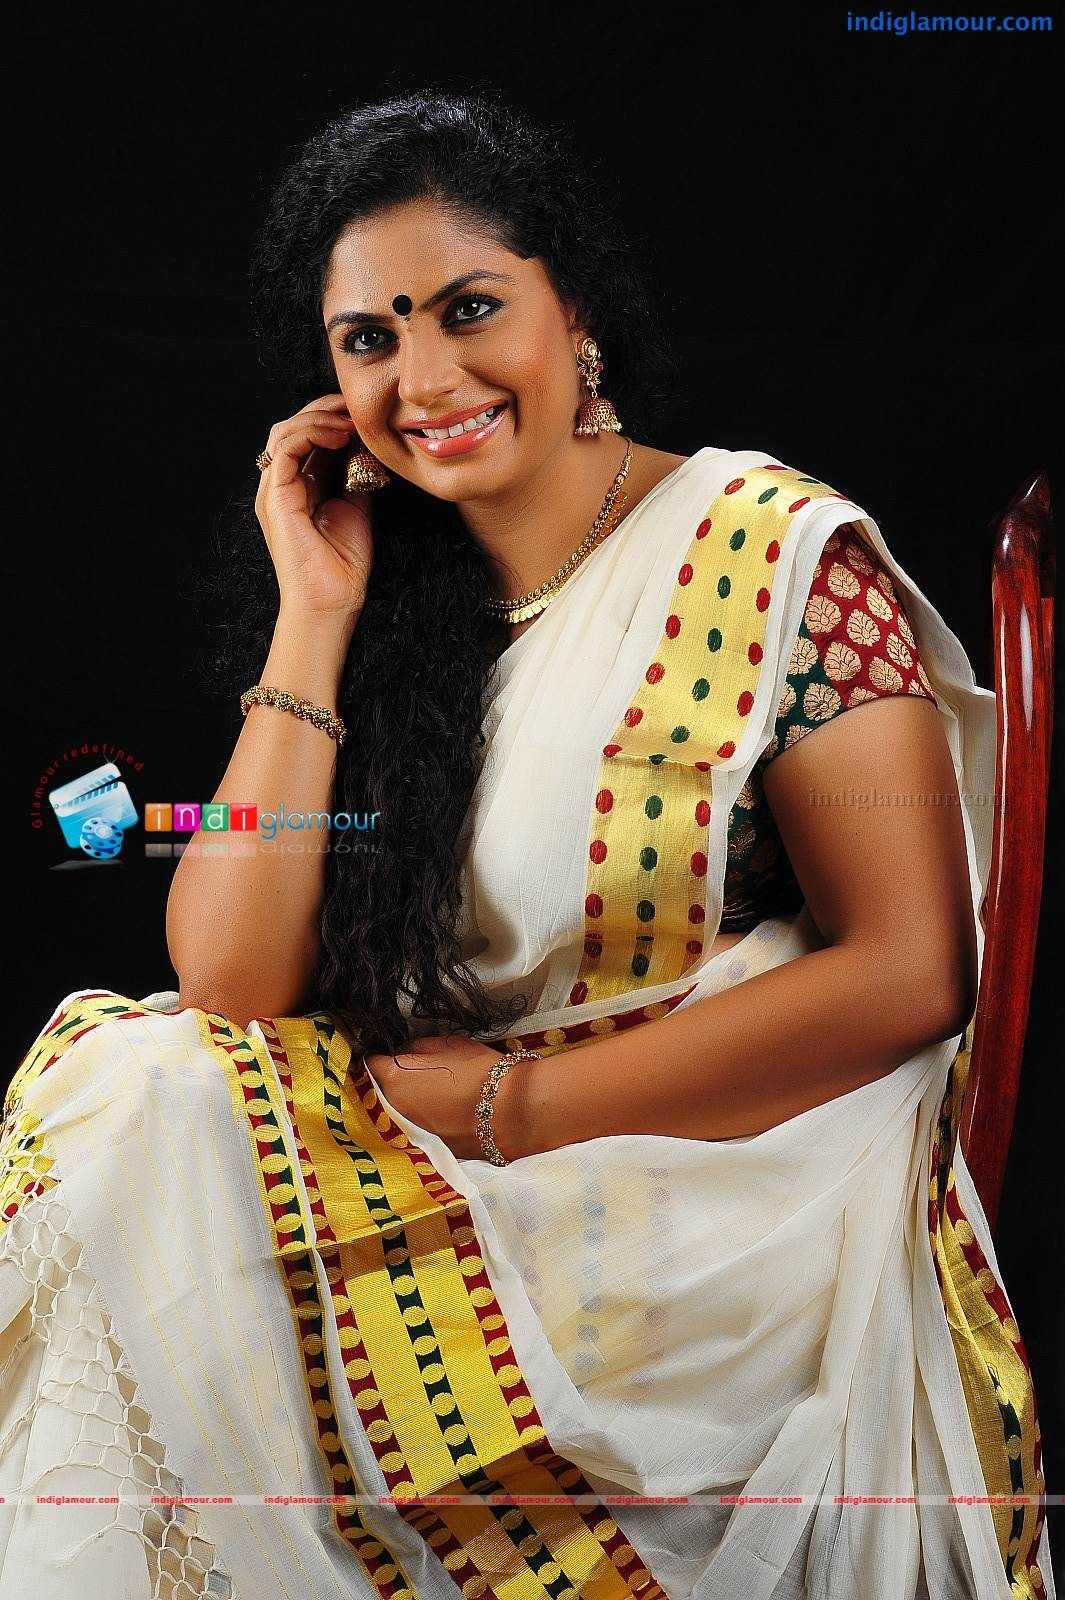 asha sarath | asha sarath | pinterest | asha sarath, saree and